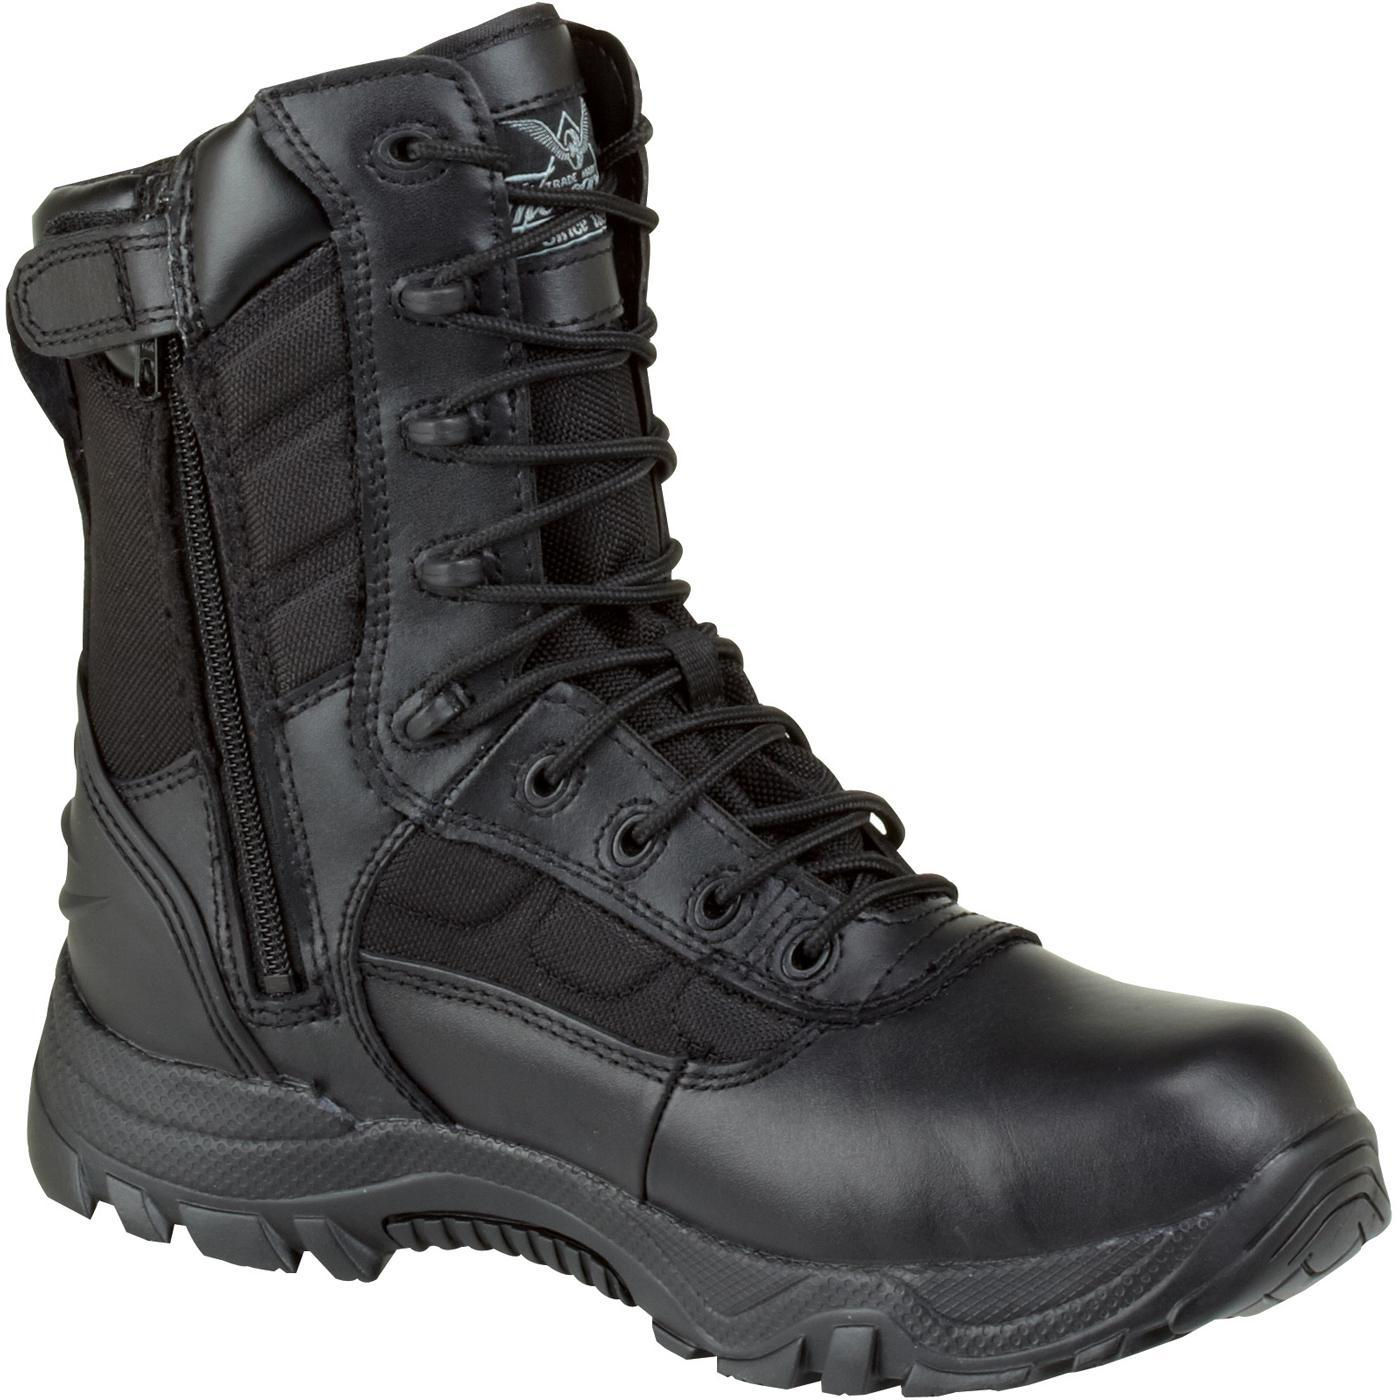 Thorogood Side Zipper Duty Work Boot 834 6291